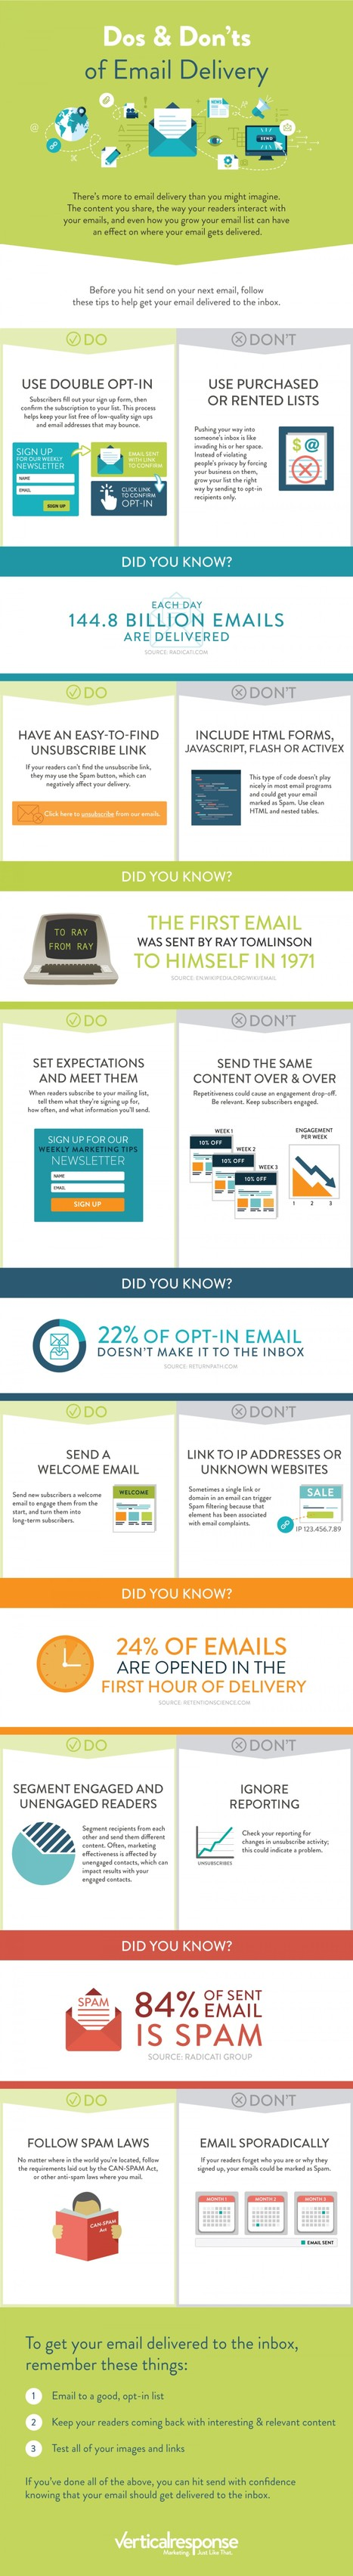 The golden rules of email delivery (Infographic) | Make Money From Home | Scoop.it